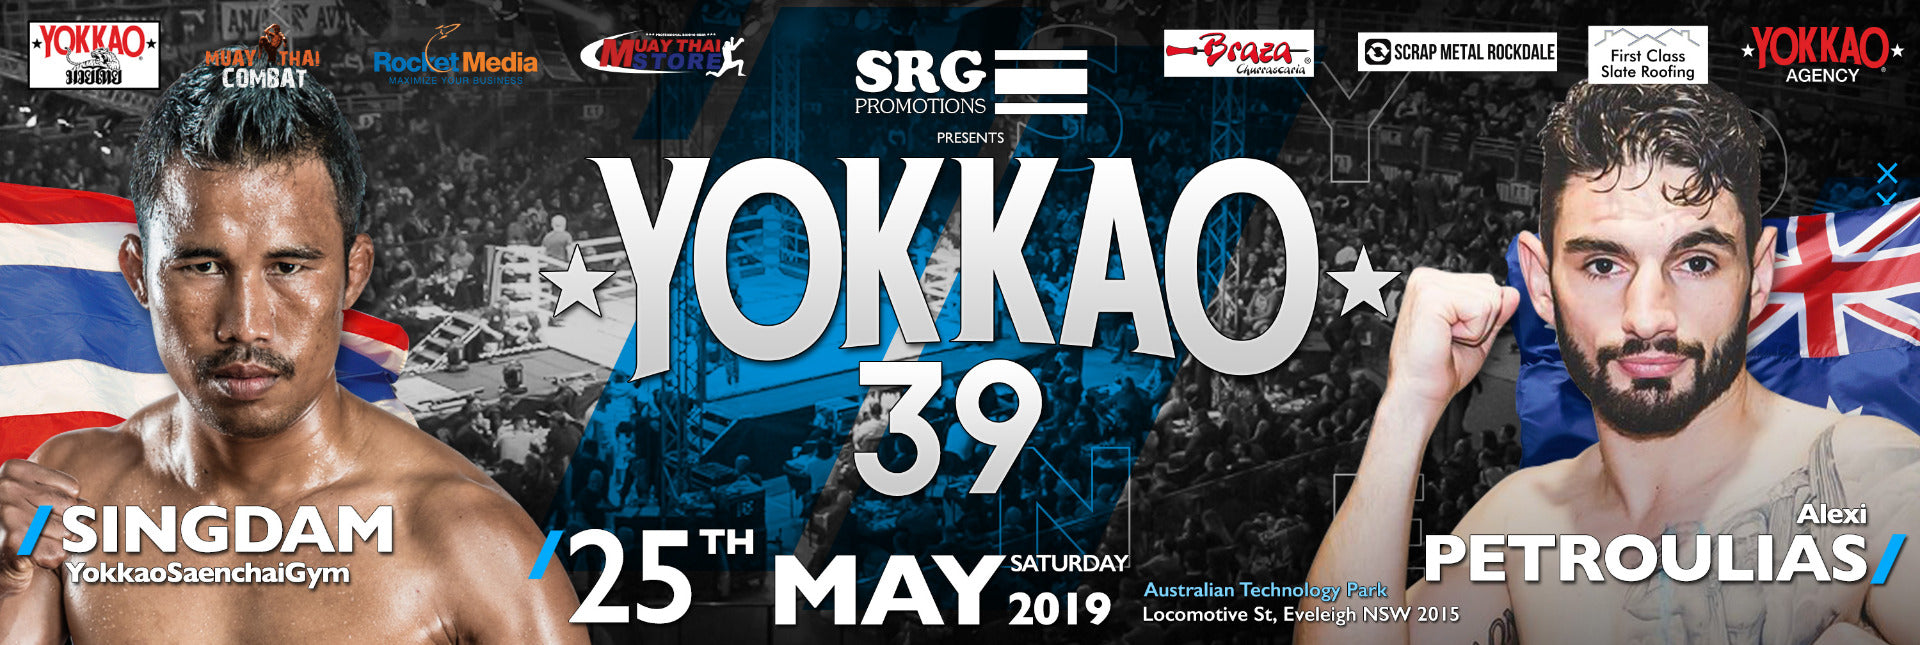 YOKKAO 39 Muay Thai Results